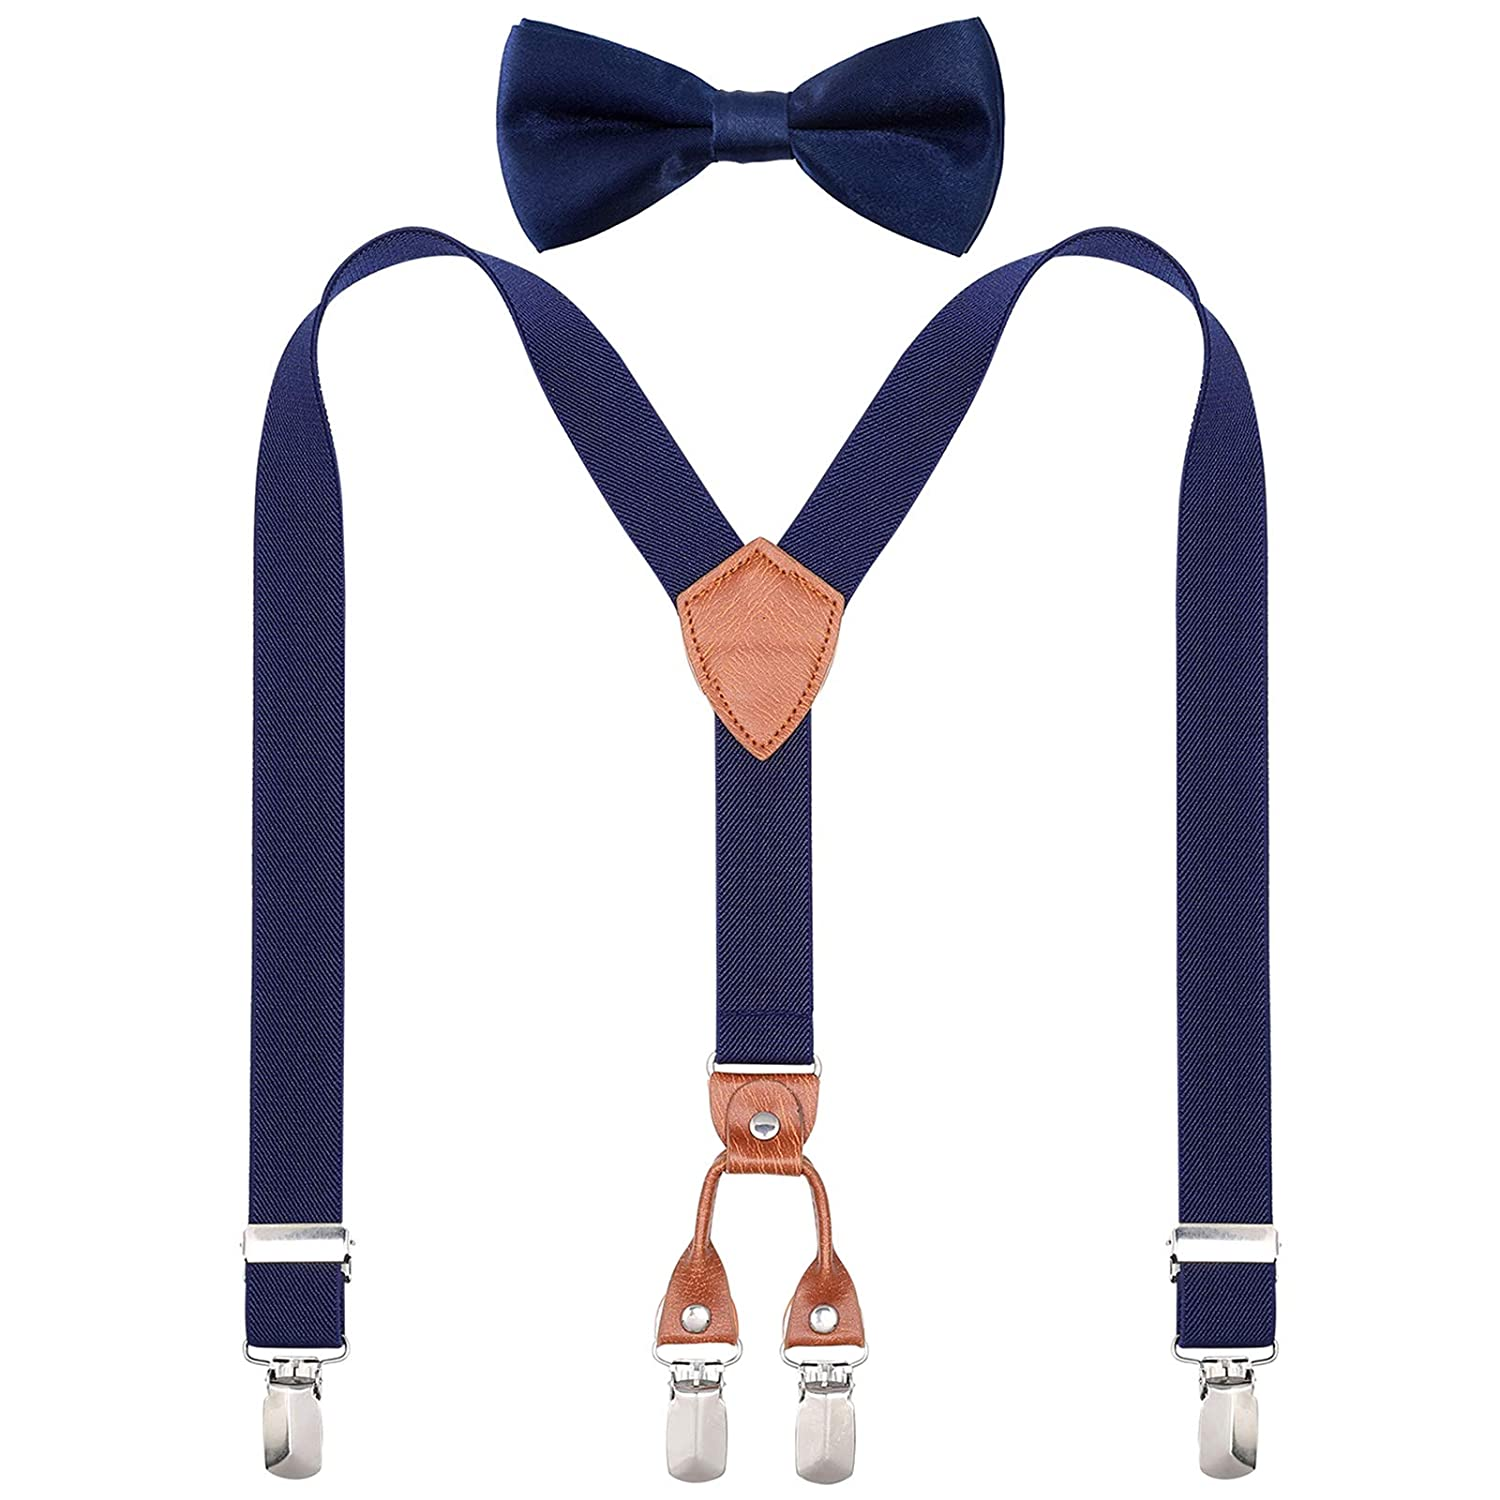 Purple, 23.6 Inch 7 Months - 3 Years Suspenders for Toddlers Kids Boys Girls Classic Adjustable Y back Elastic Leather Childrens Suspenders